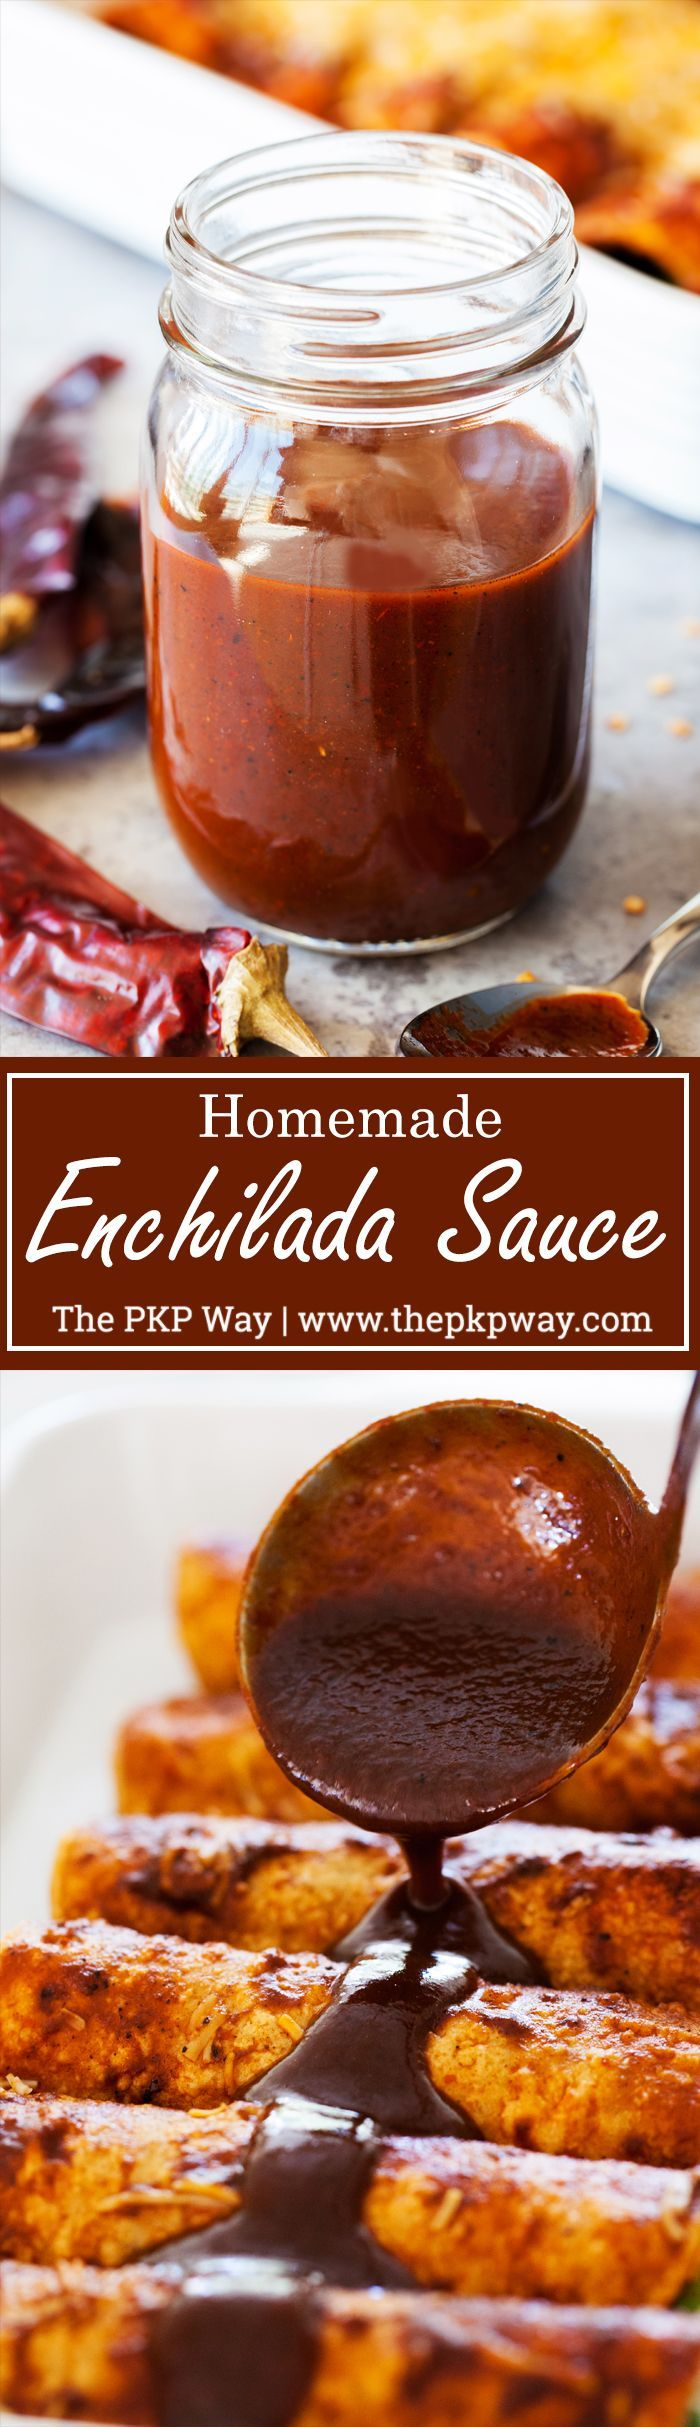 A rich and thick Red Enchilada Sauce made entirely from scratch using fresh garlic and guajillo chilis.